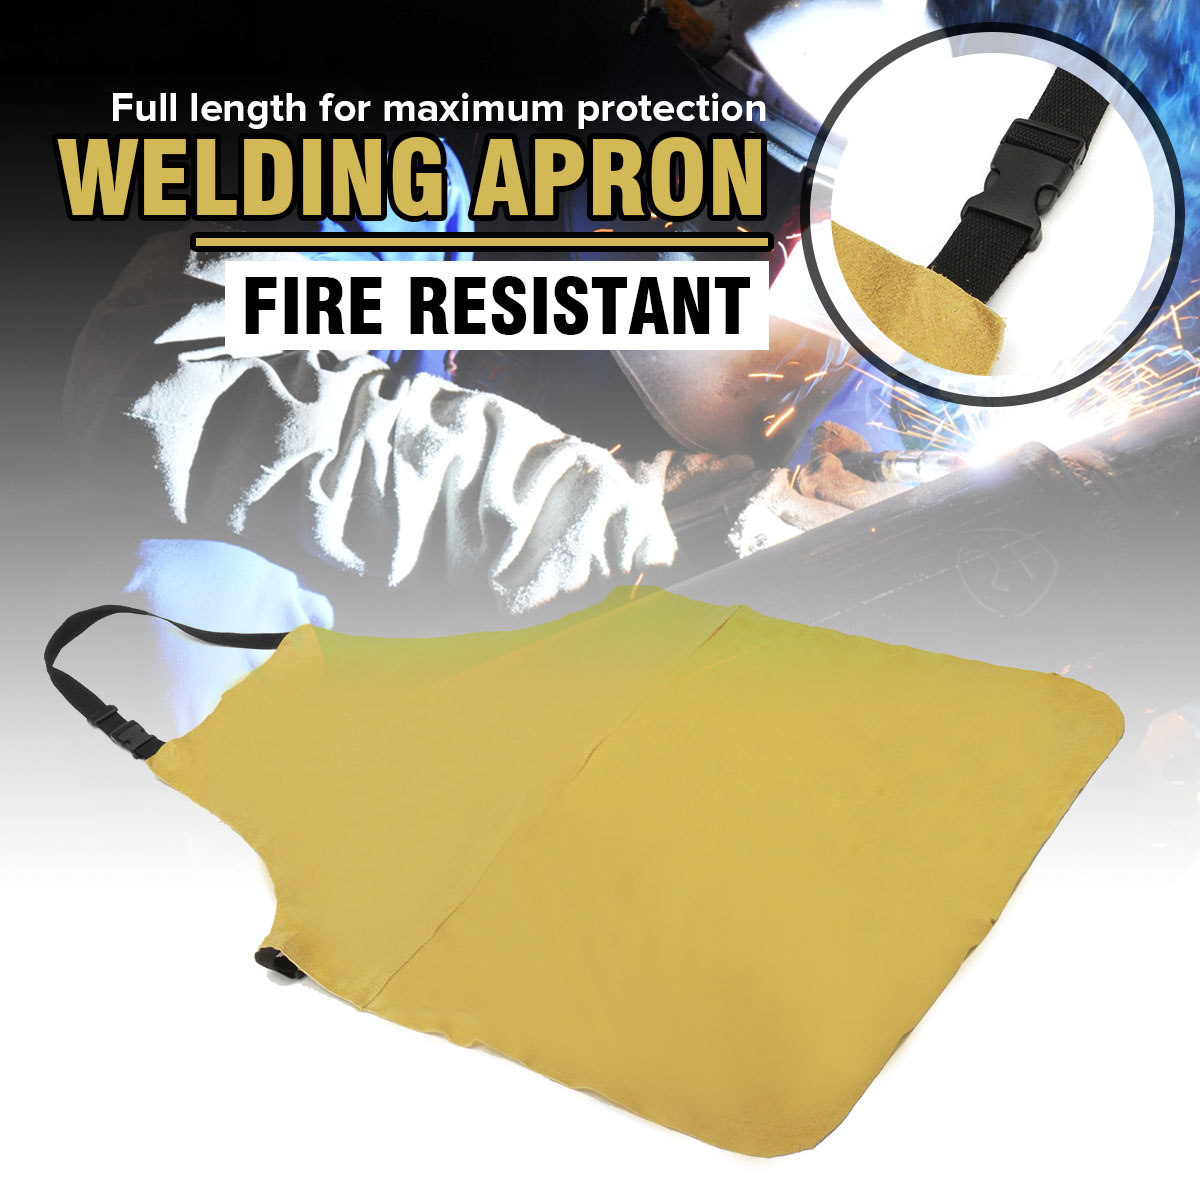 Welding Apron Welders Dual Leather Welding Cutting Bib Shop Apron Heat Resistant Workplace Safety Safety Clothing Self ProtectWelding Apron Welders Dual Leather Welding Cutting Bib Shop Apron Heat Resistant Workplace Safety Safety Clothing Self Protect